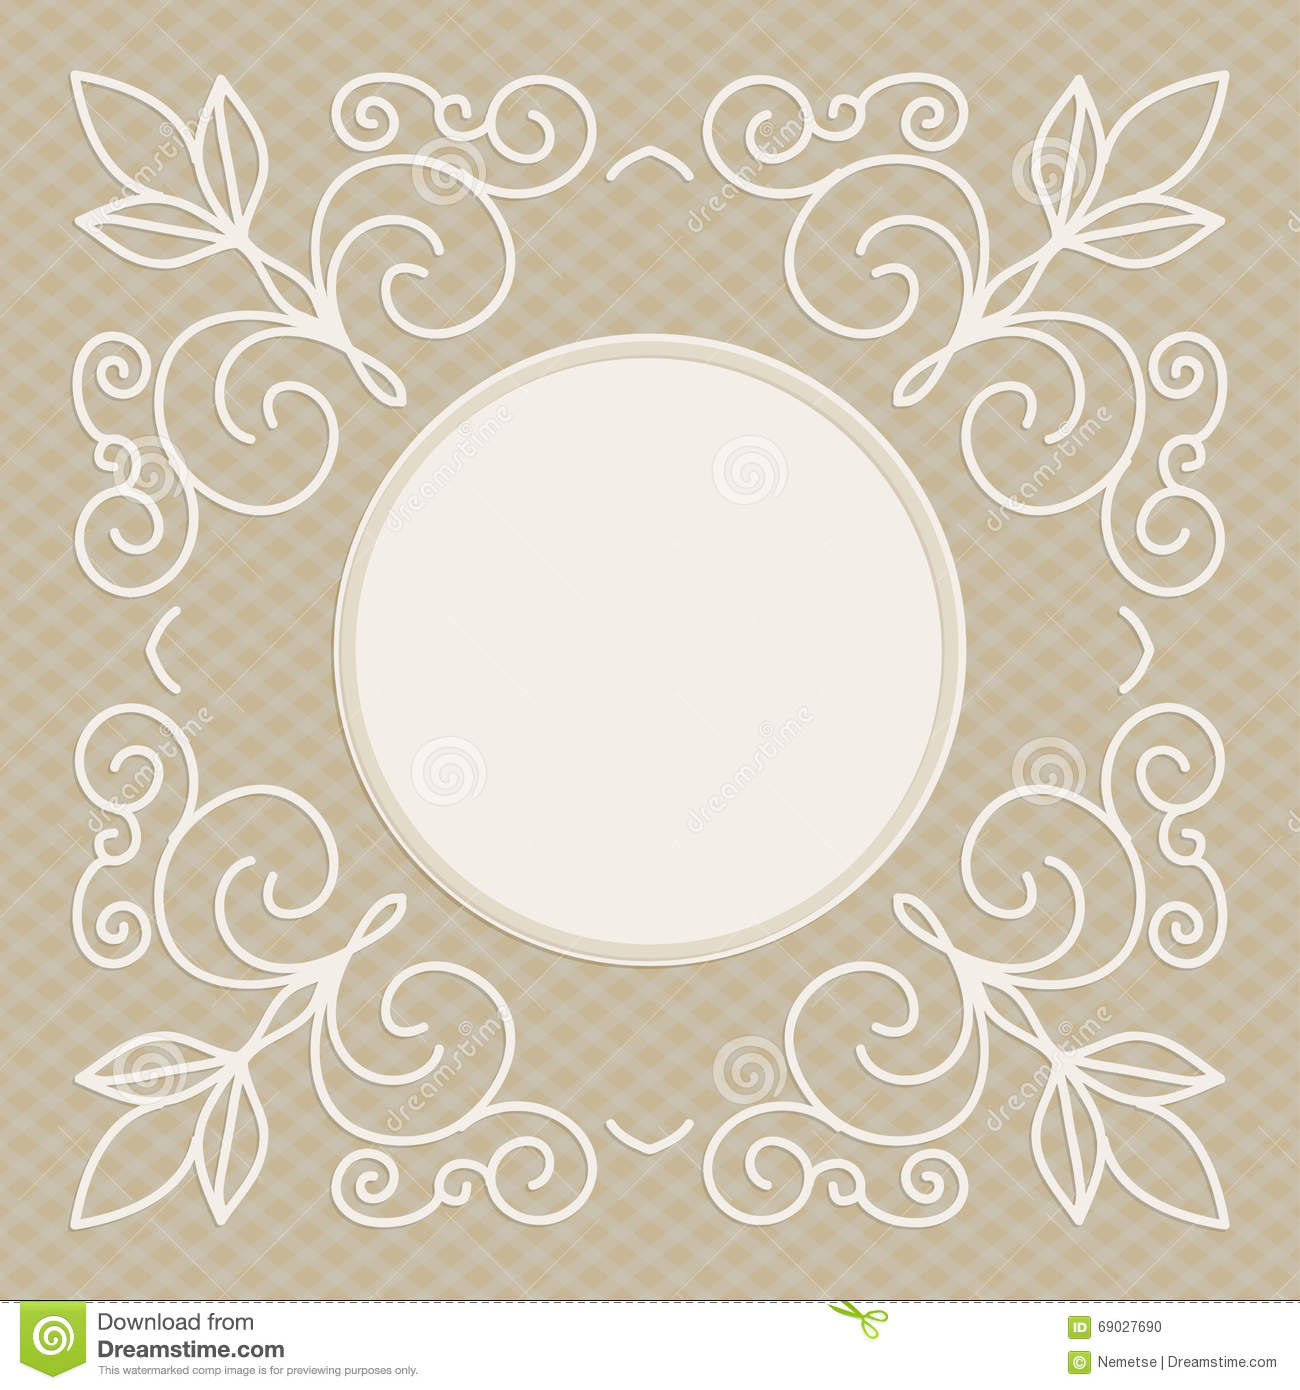 wedding invitation design template decorative background for greeting card in mono line style